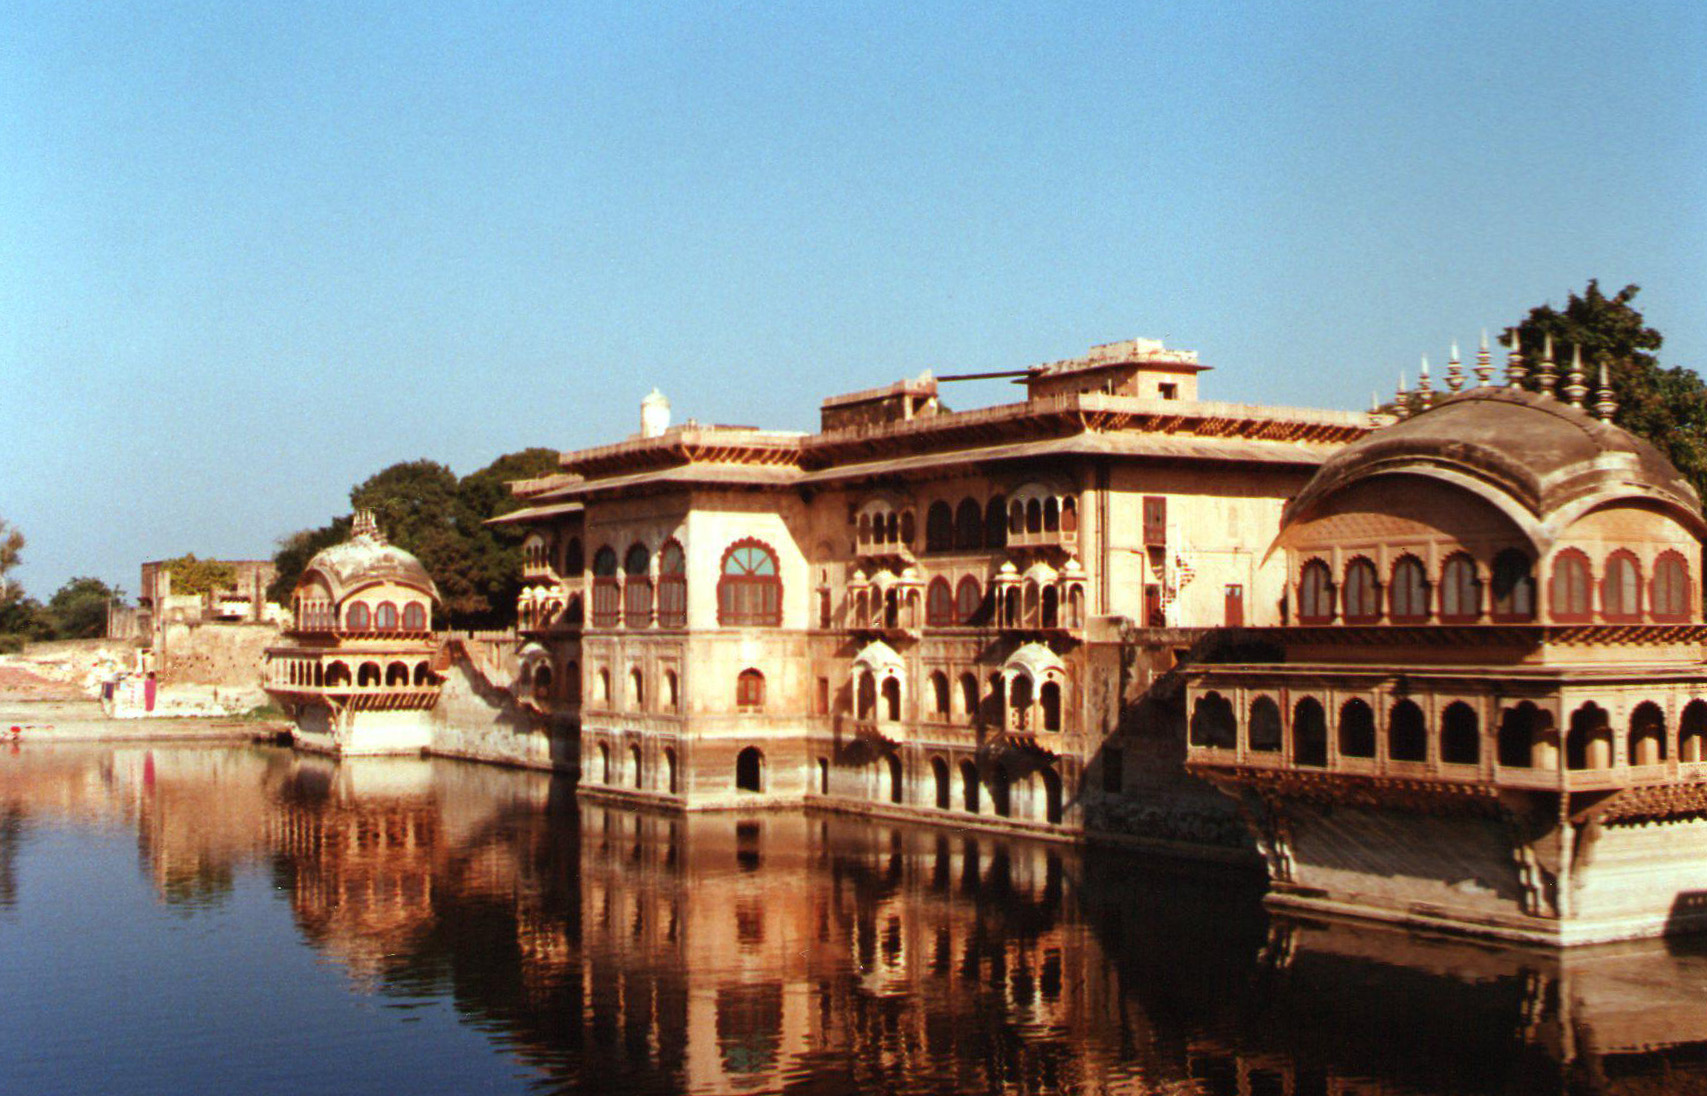 http://www.getbookcab.com/Admin/images/Bharatpur.jpg